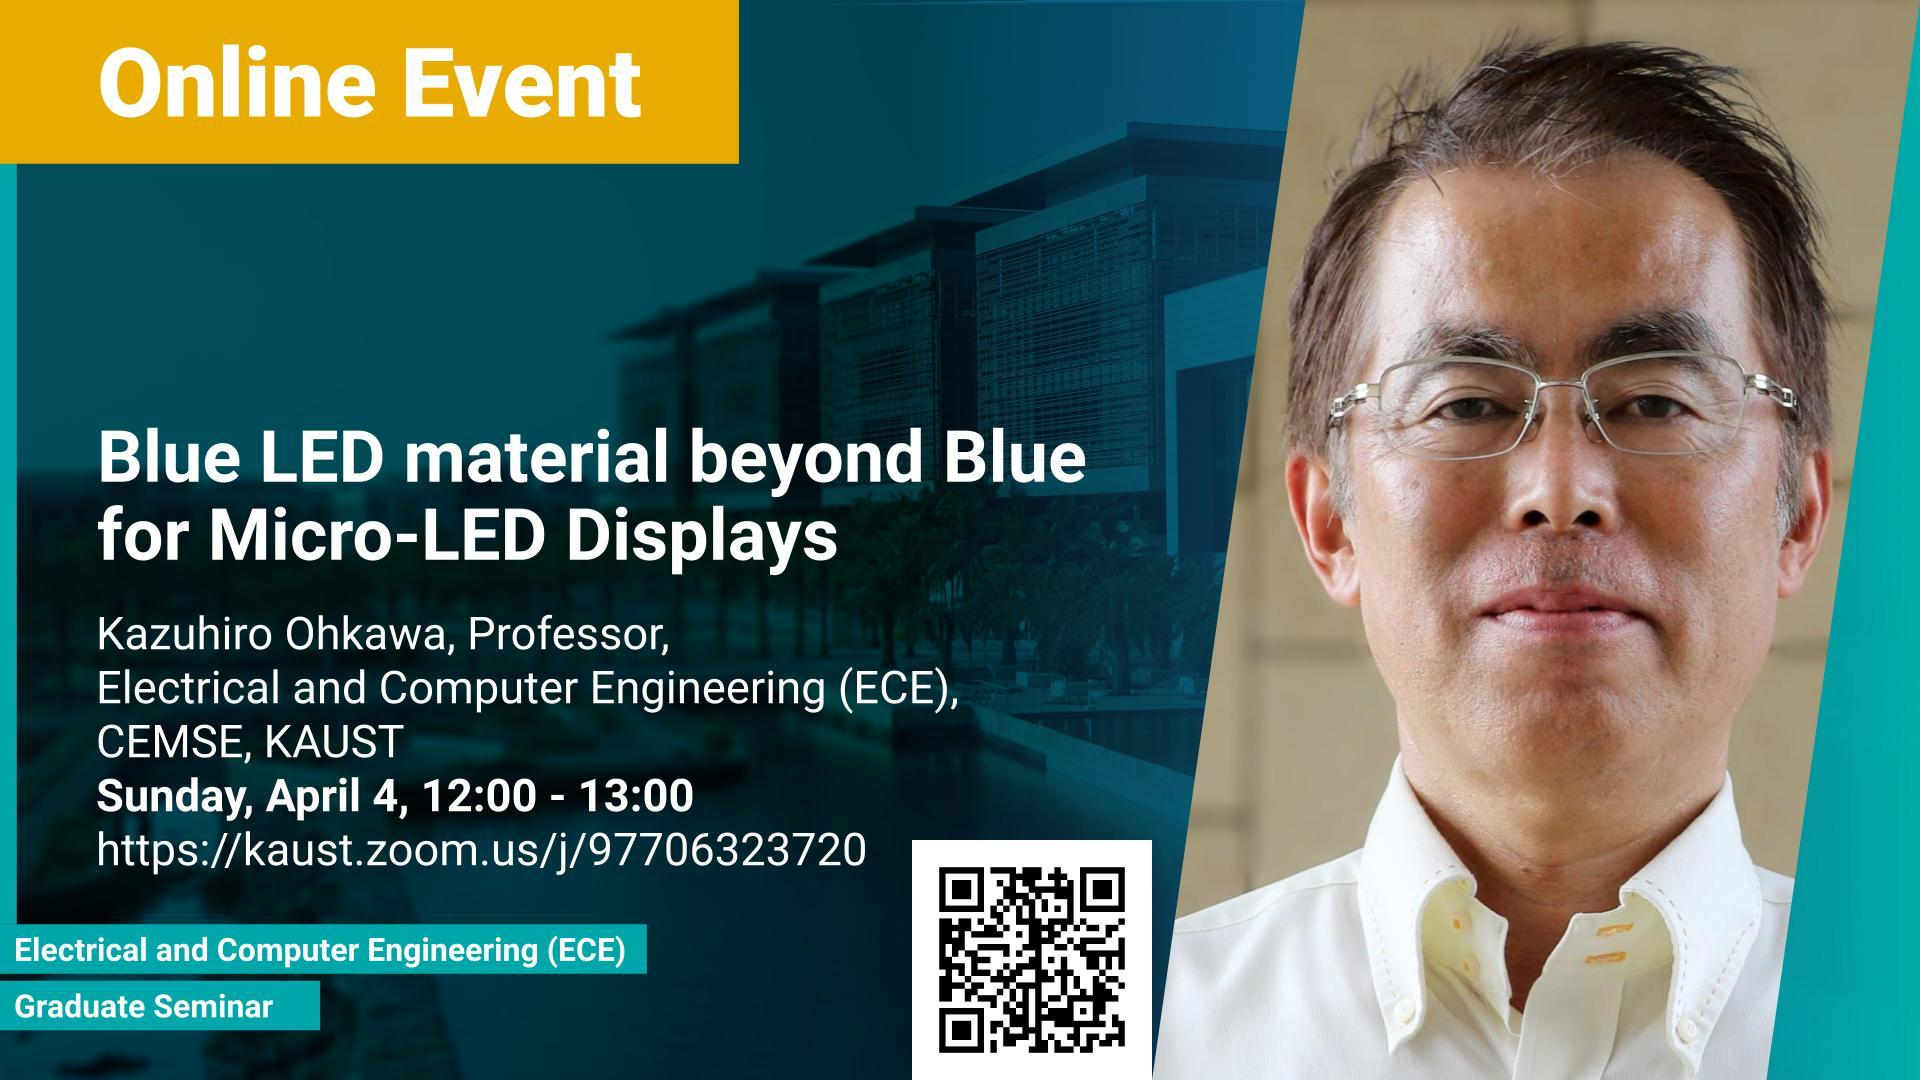 KAUST-CEMSE-ECE-Graduate-Seminar-Blue-LED-material-beyond-Blue-for-Micro-LED-Displays.jpg